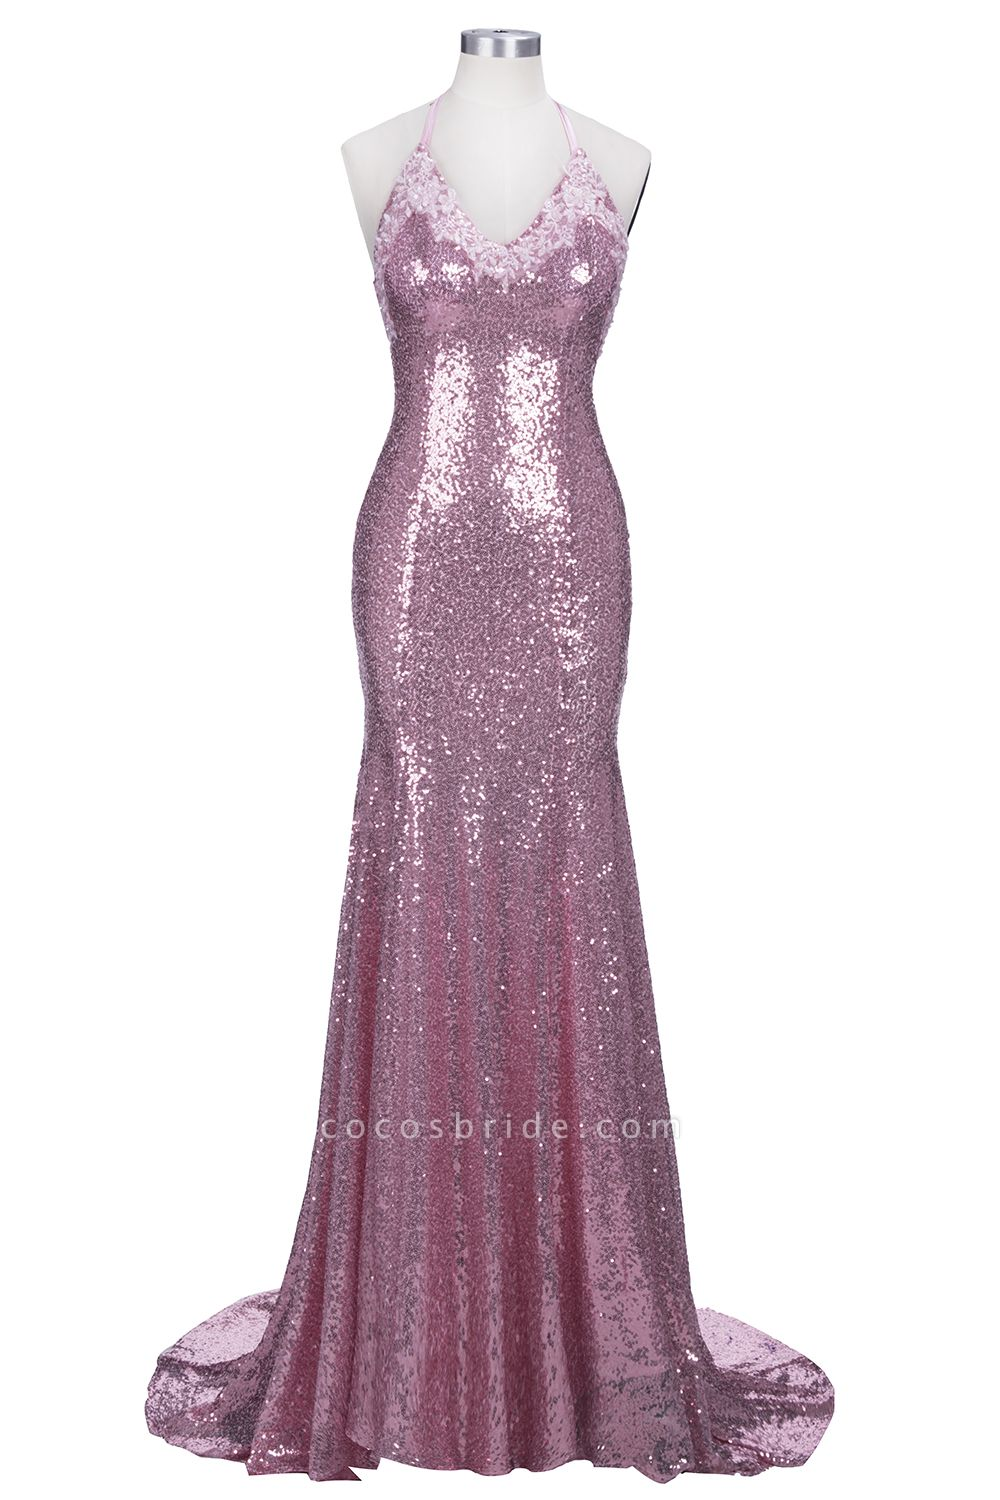 Glorious Spaghetti Straps Sequined Mermaid Prom Dress